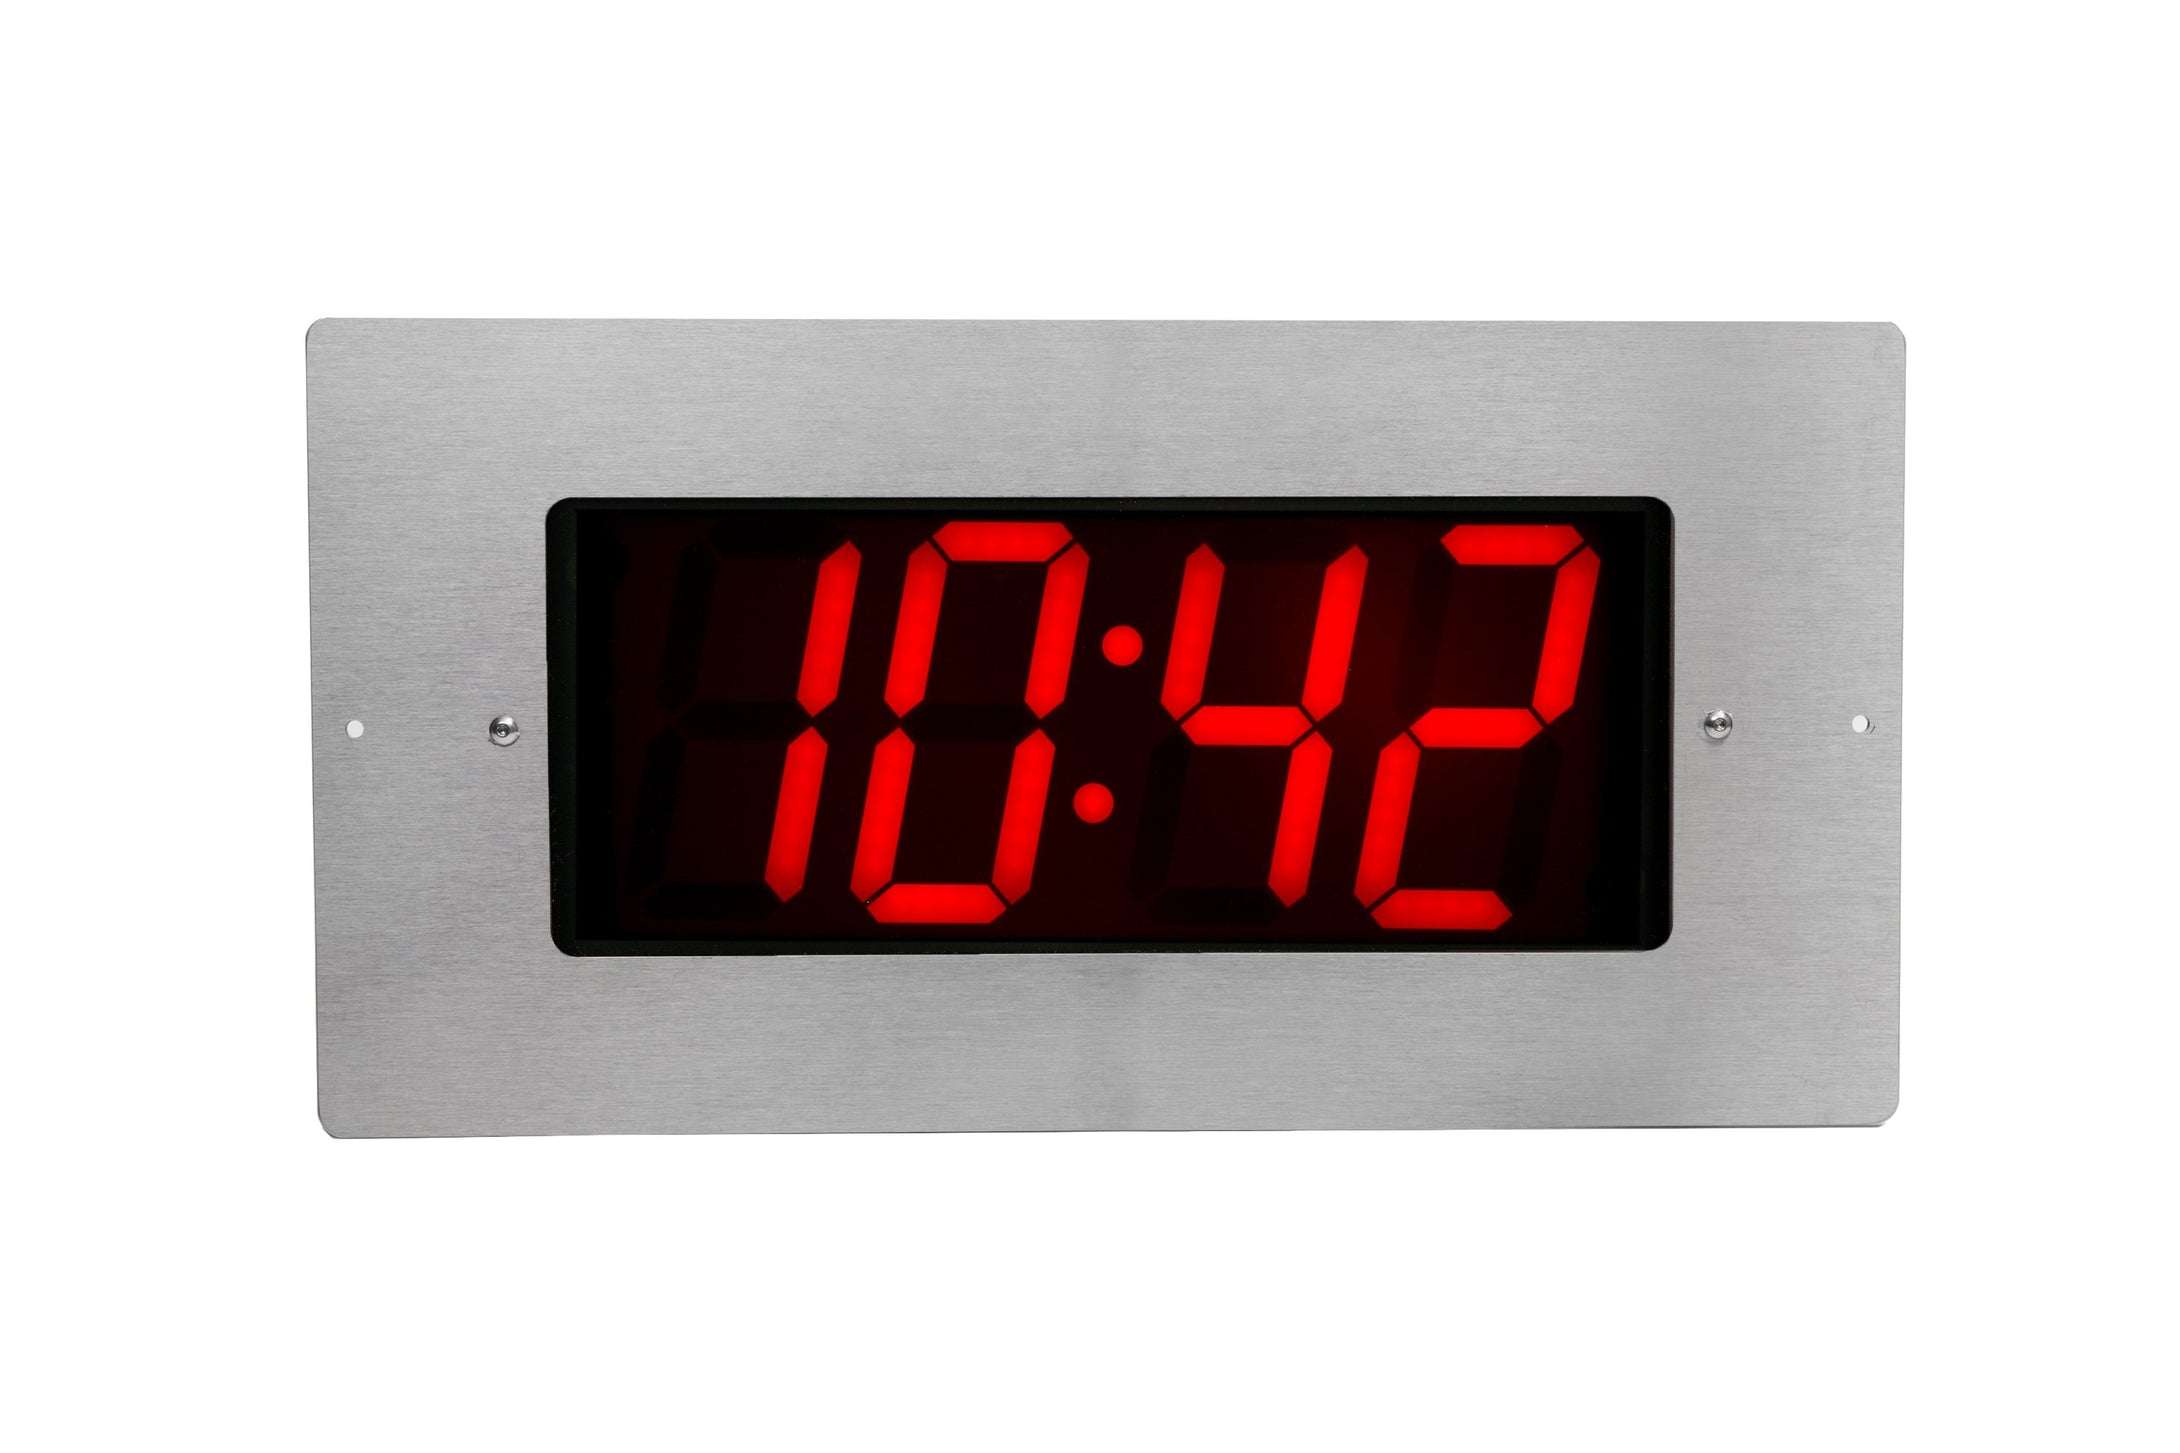 4 Digit PoE Clock, Red LED, Flush Mounted with Stainless Steel Faceplate